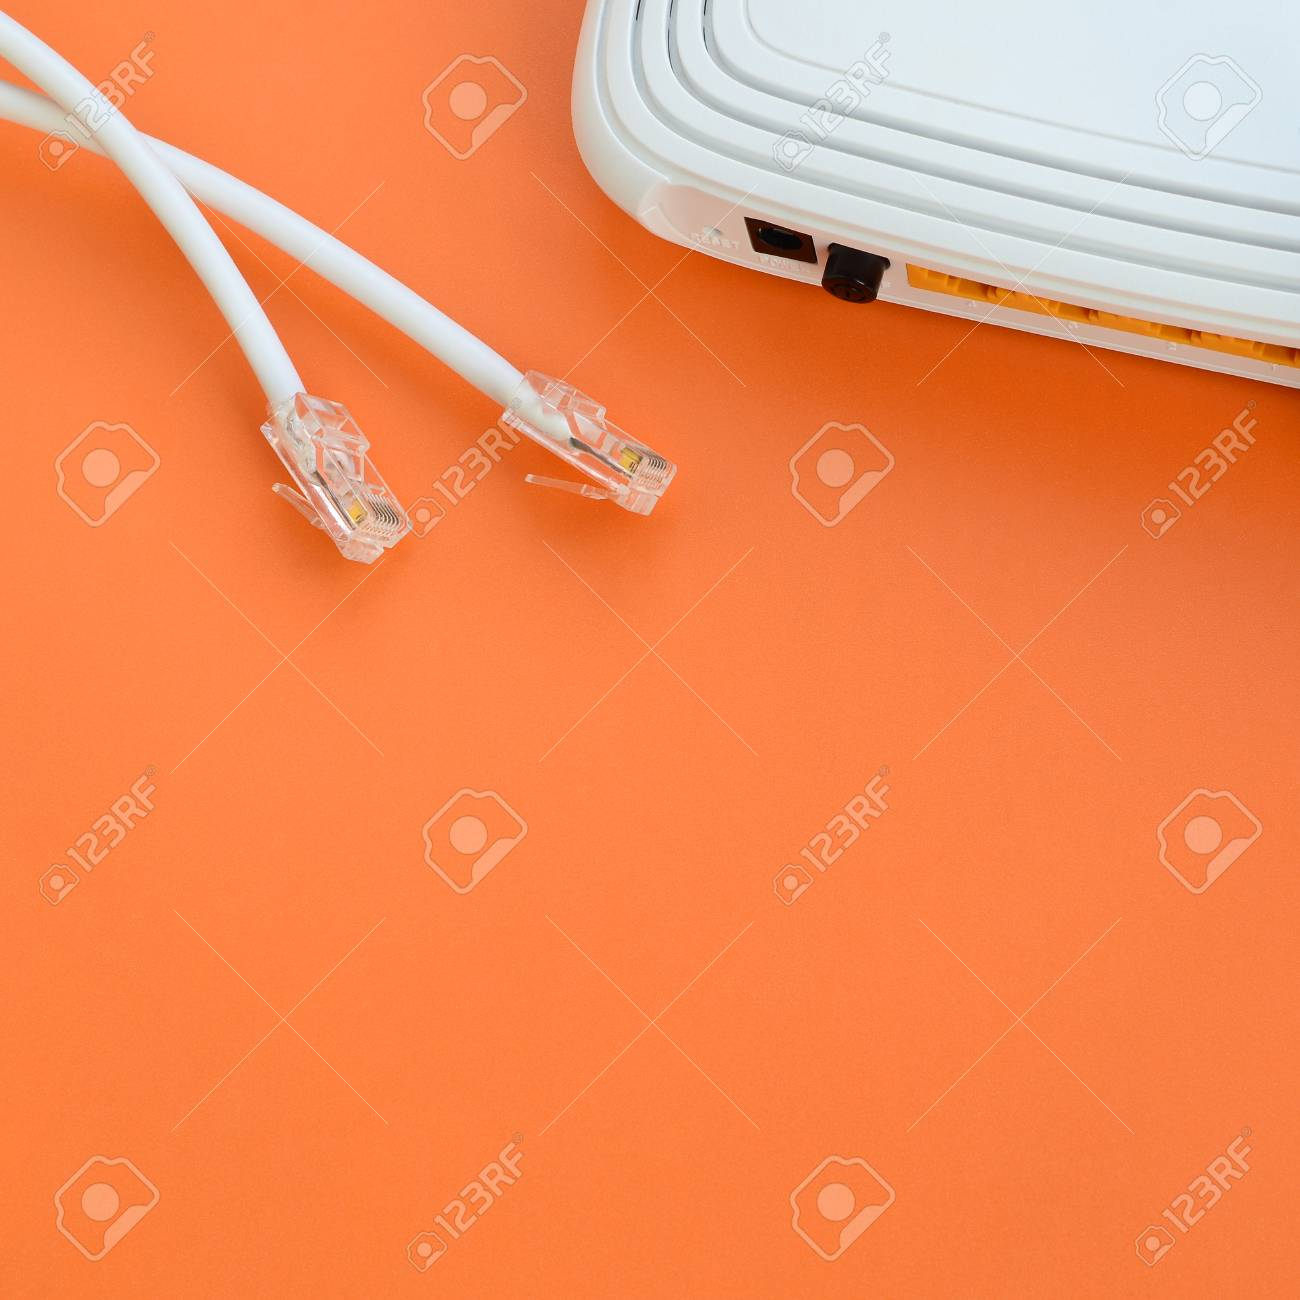 Orange Connexion Internet Internet Router And Internet Cable Plugs Lie On A Bright Orange